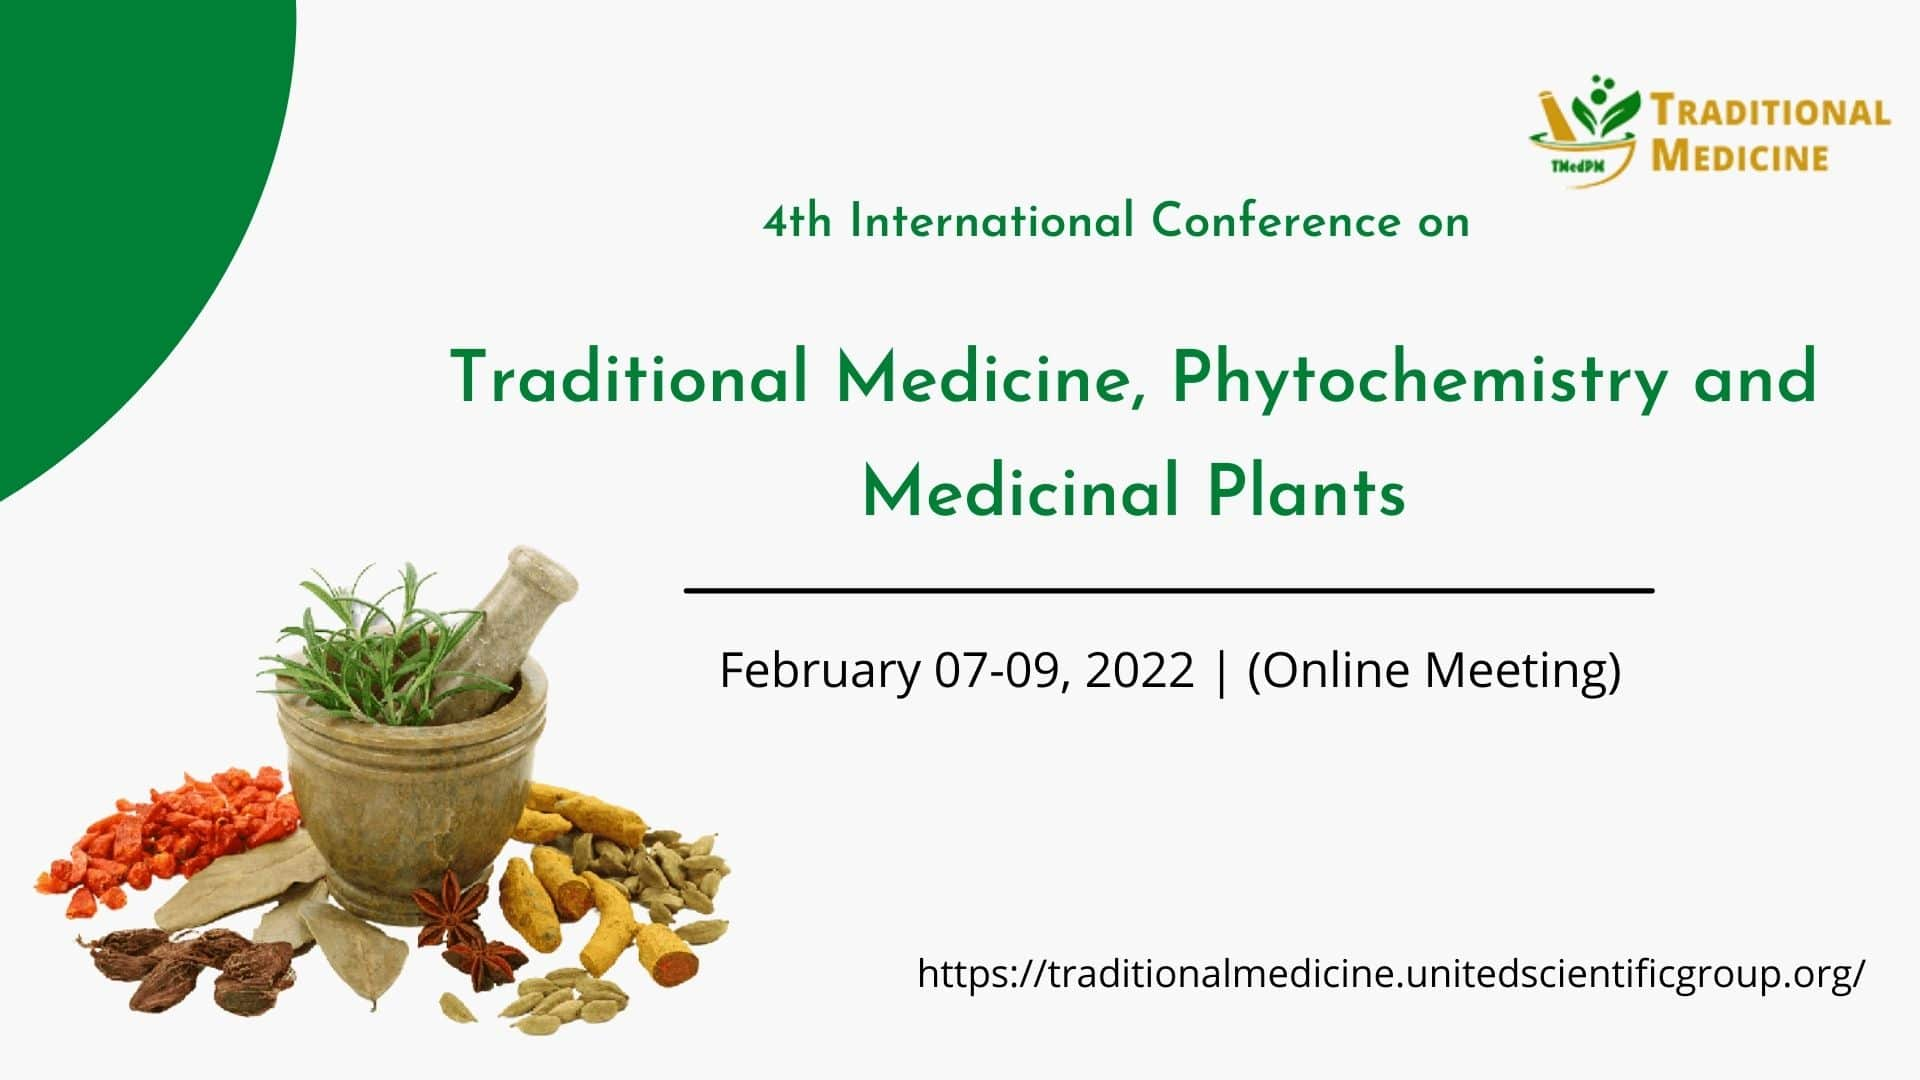 4th International Conference on Traditional Medicine, Phytochemistry and Medicinal Plants